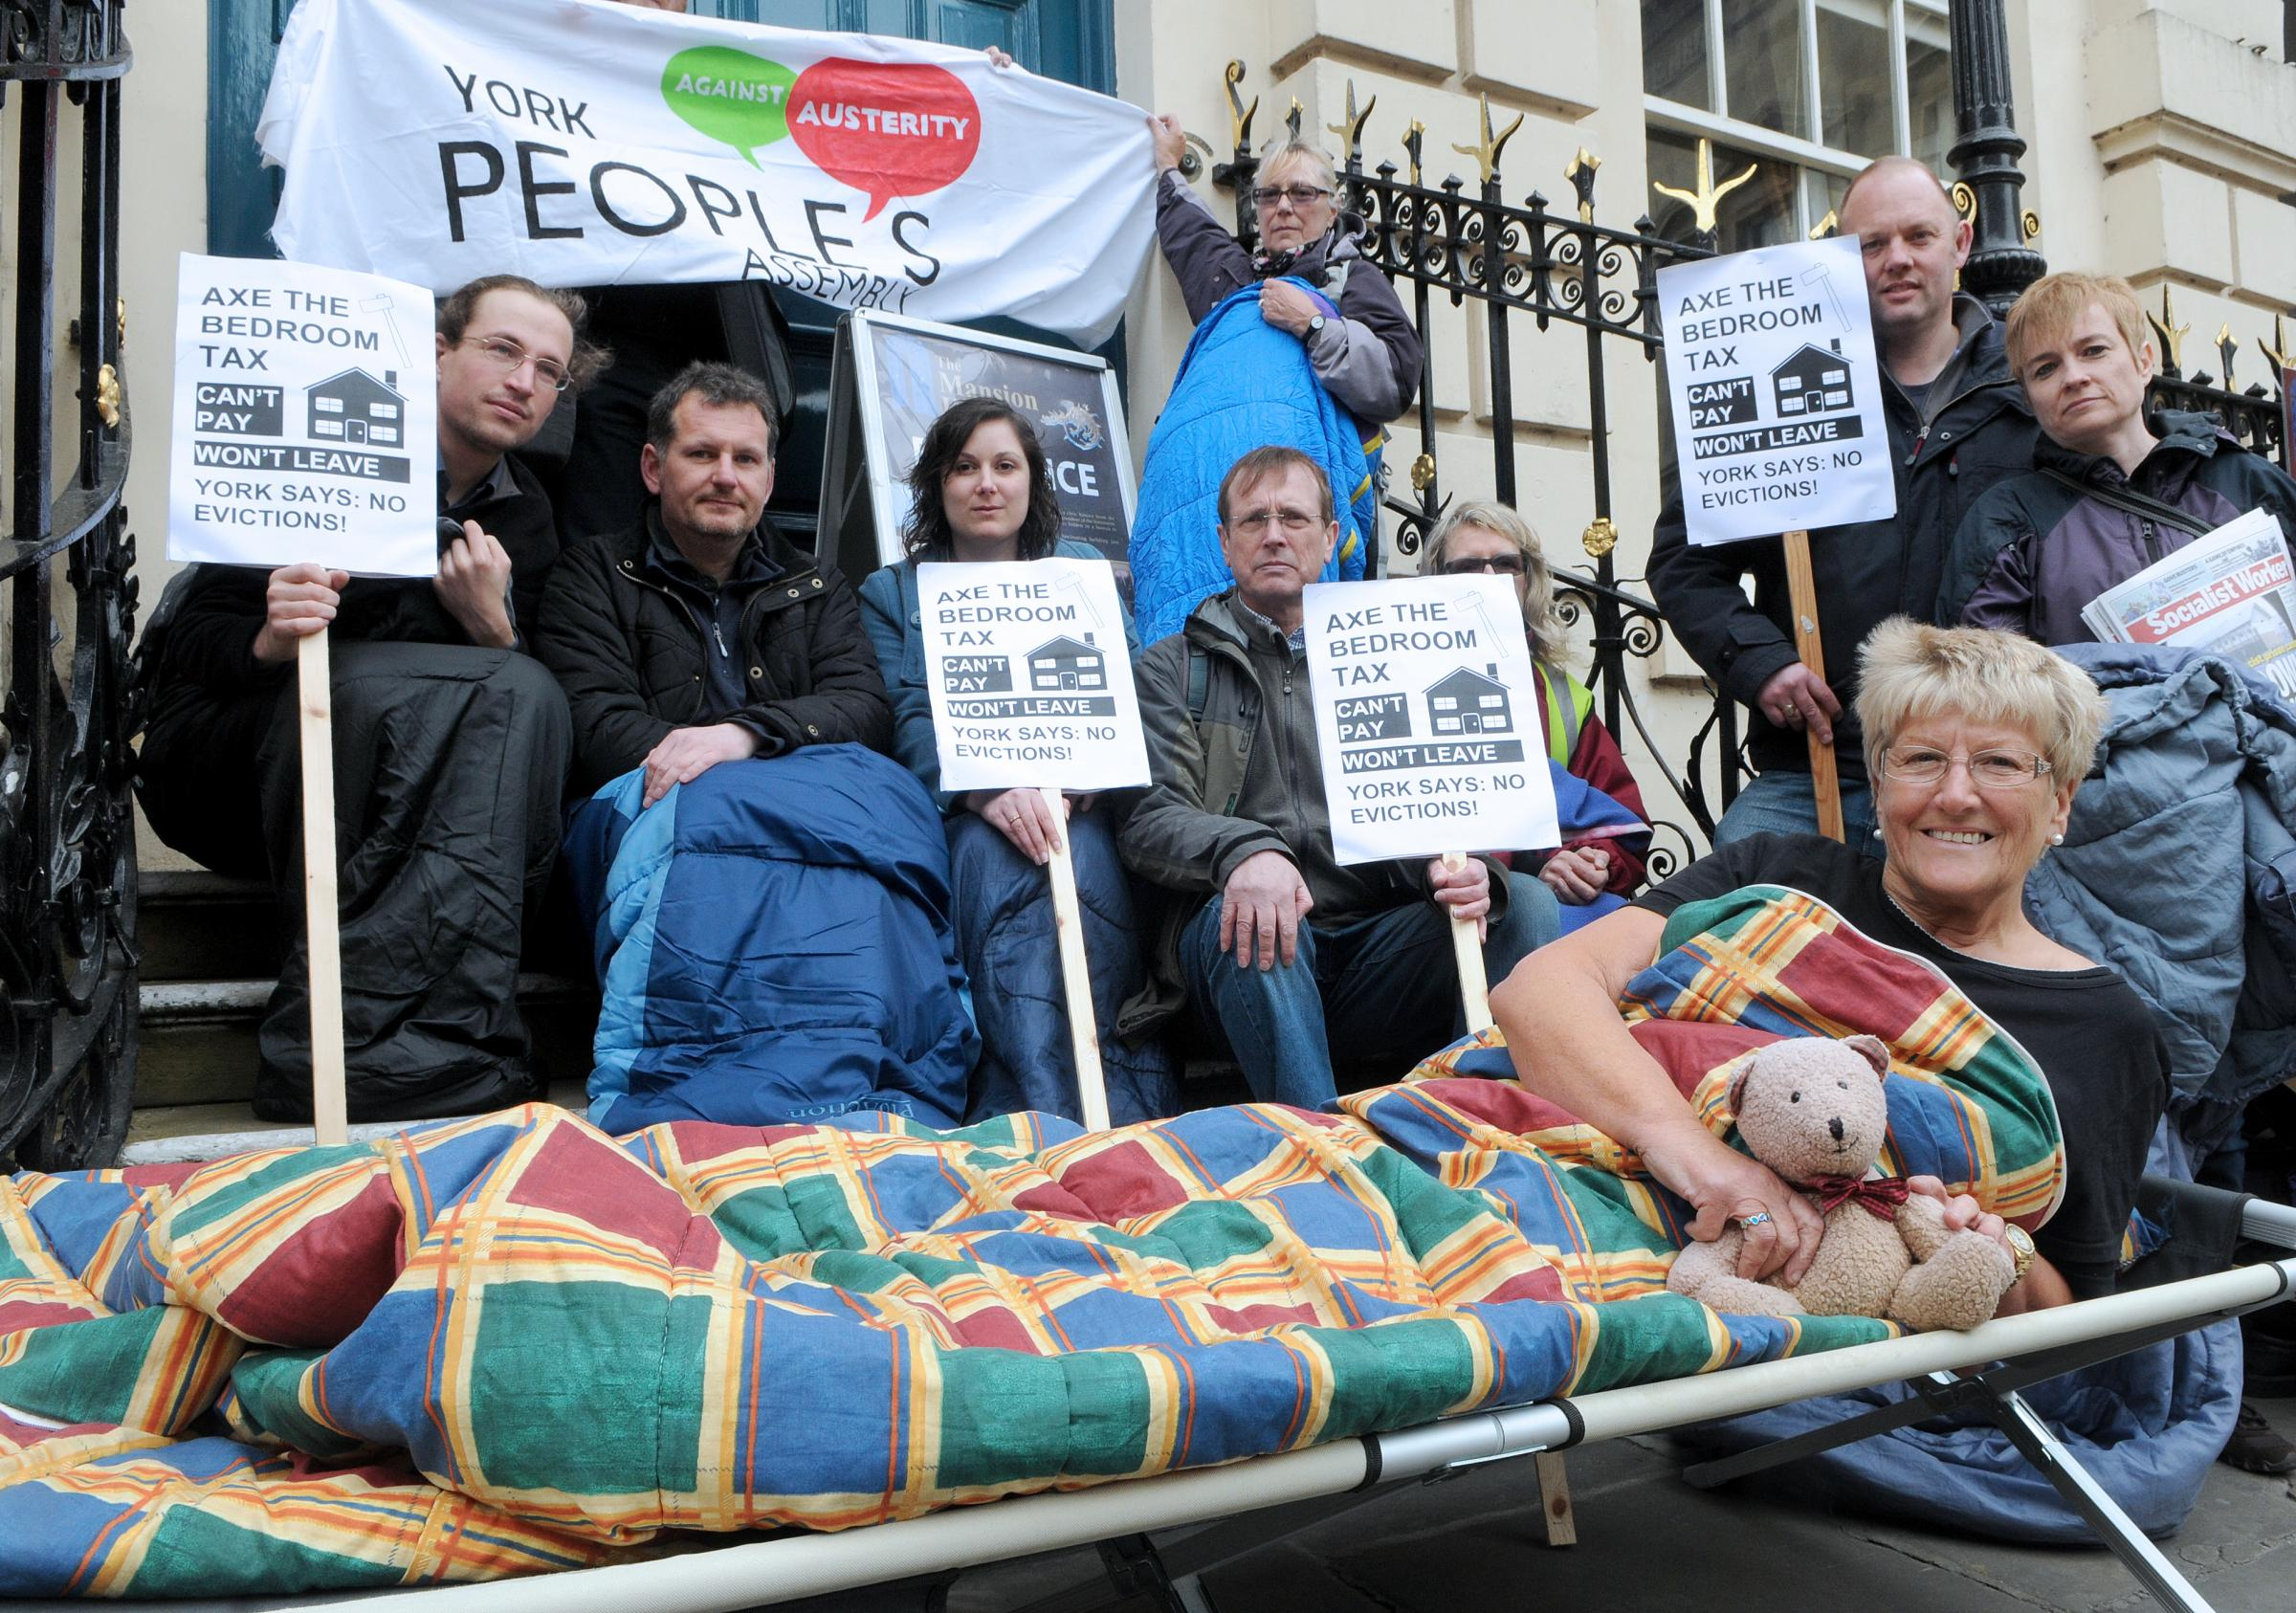 Gwen Vardigans, foreground, and other members of the York People's Assembly during the 'bedroom tax' protest outside the Mansion House.